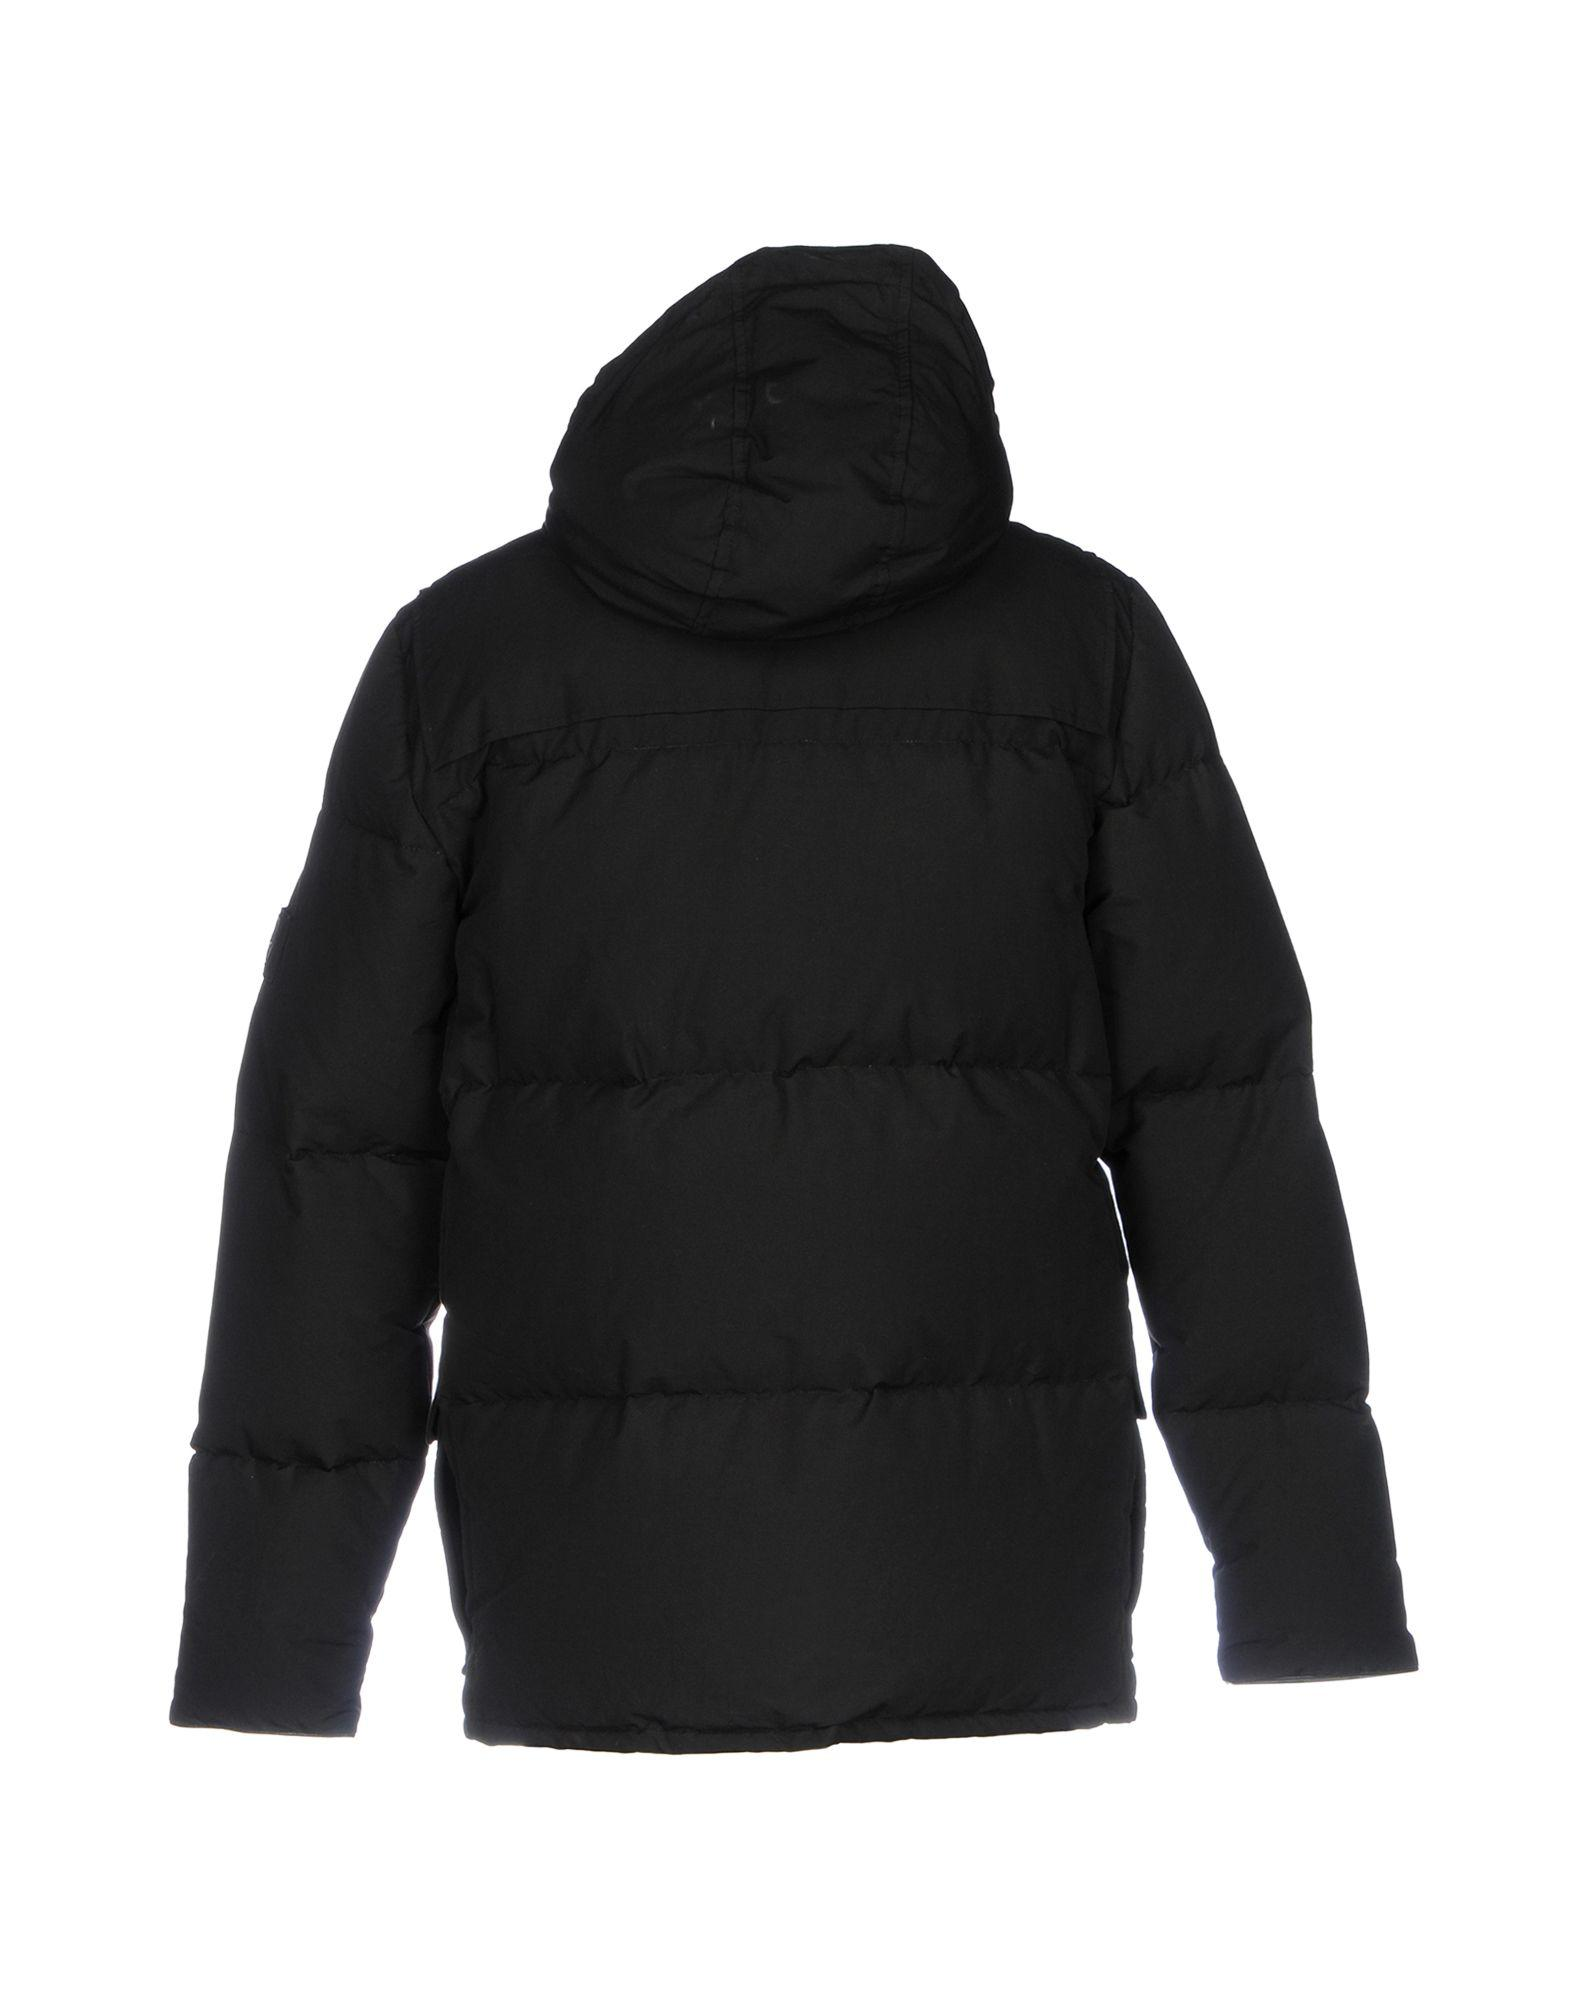 black single men in penfield Shop new season penfield men's clothing and accessories online free deliveries on orders over $100.